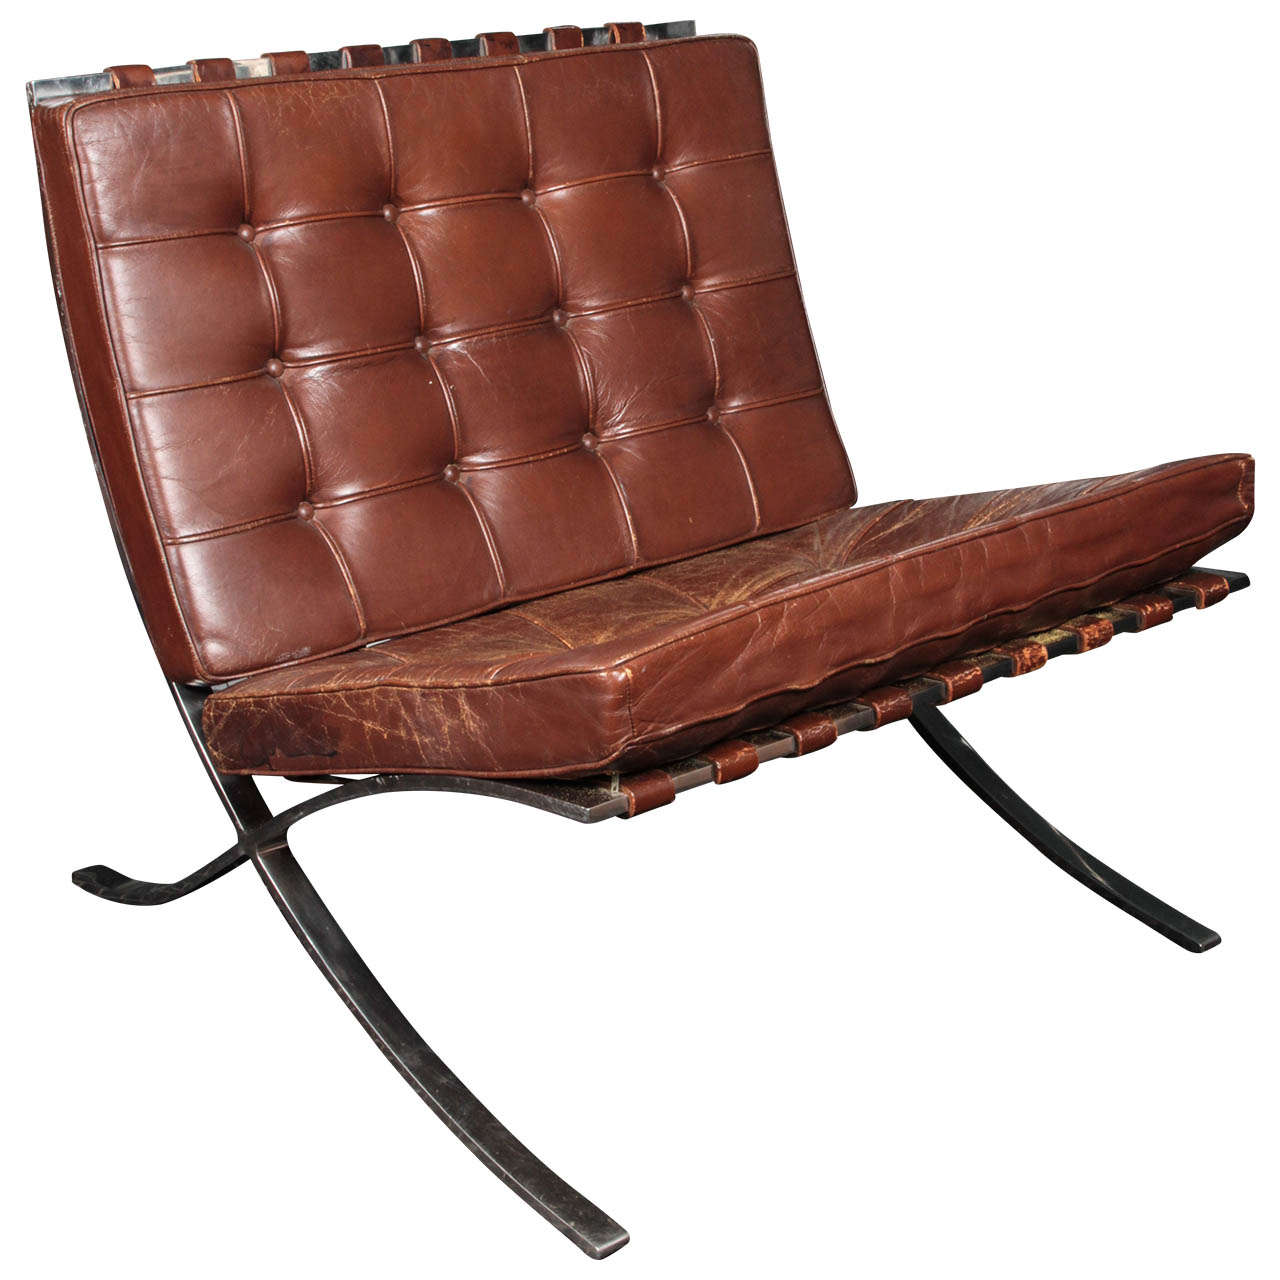 Mies van der rohe chair - Brown Leather Barcelona Chair By Ludwig Mies Van Der Rohe For Knoll 1